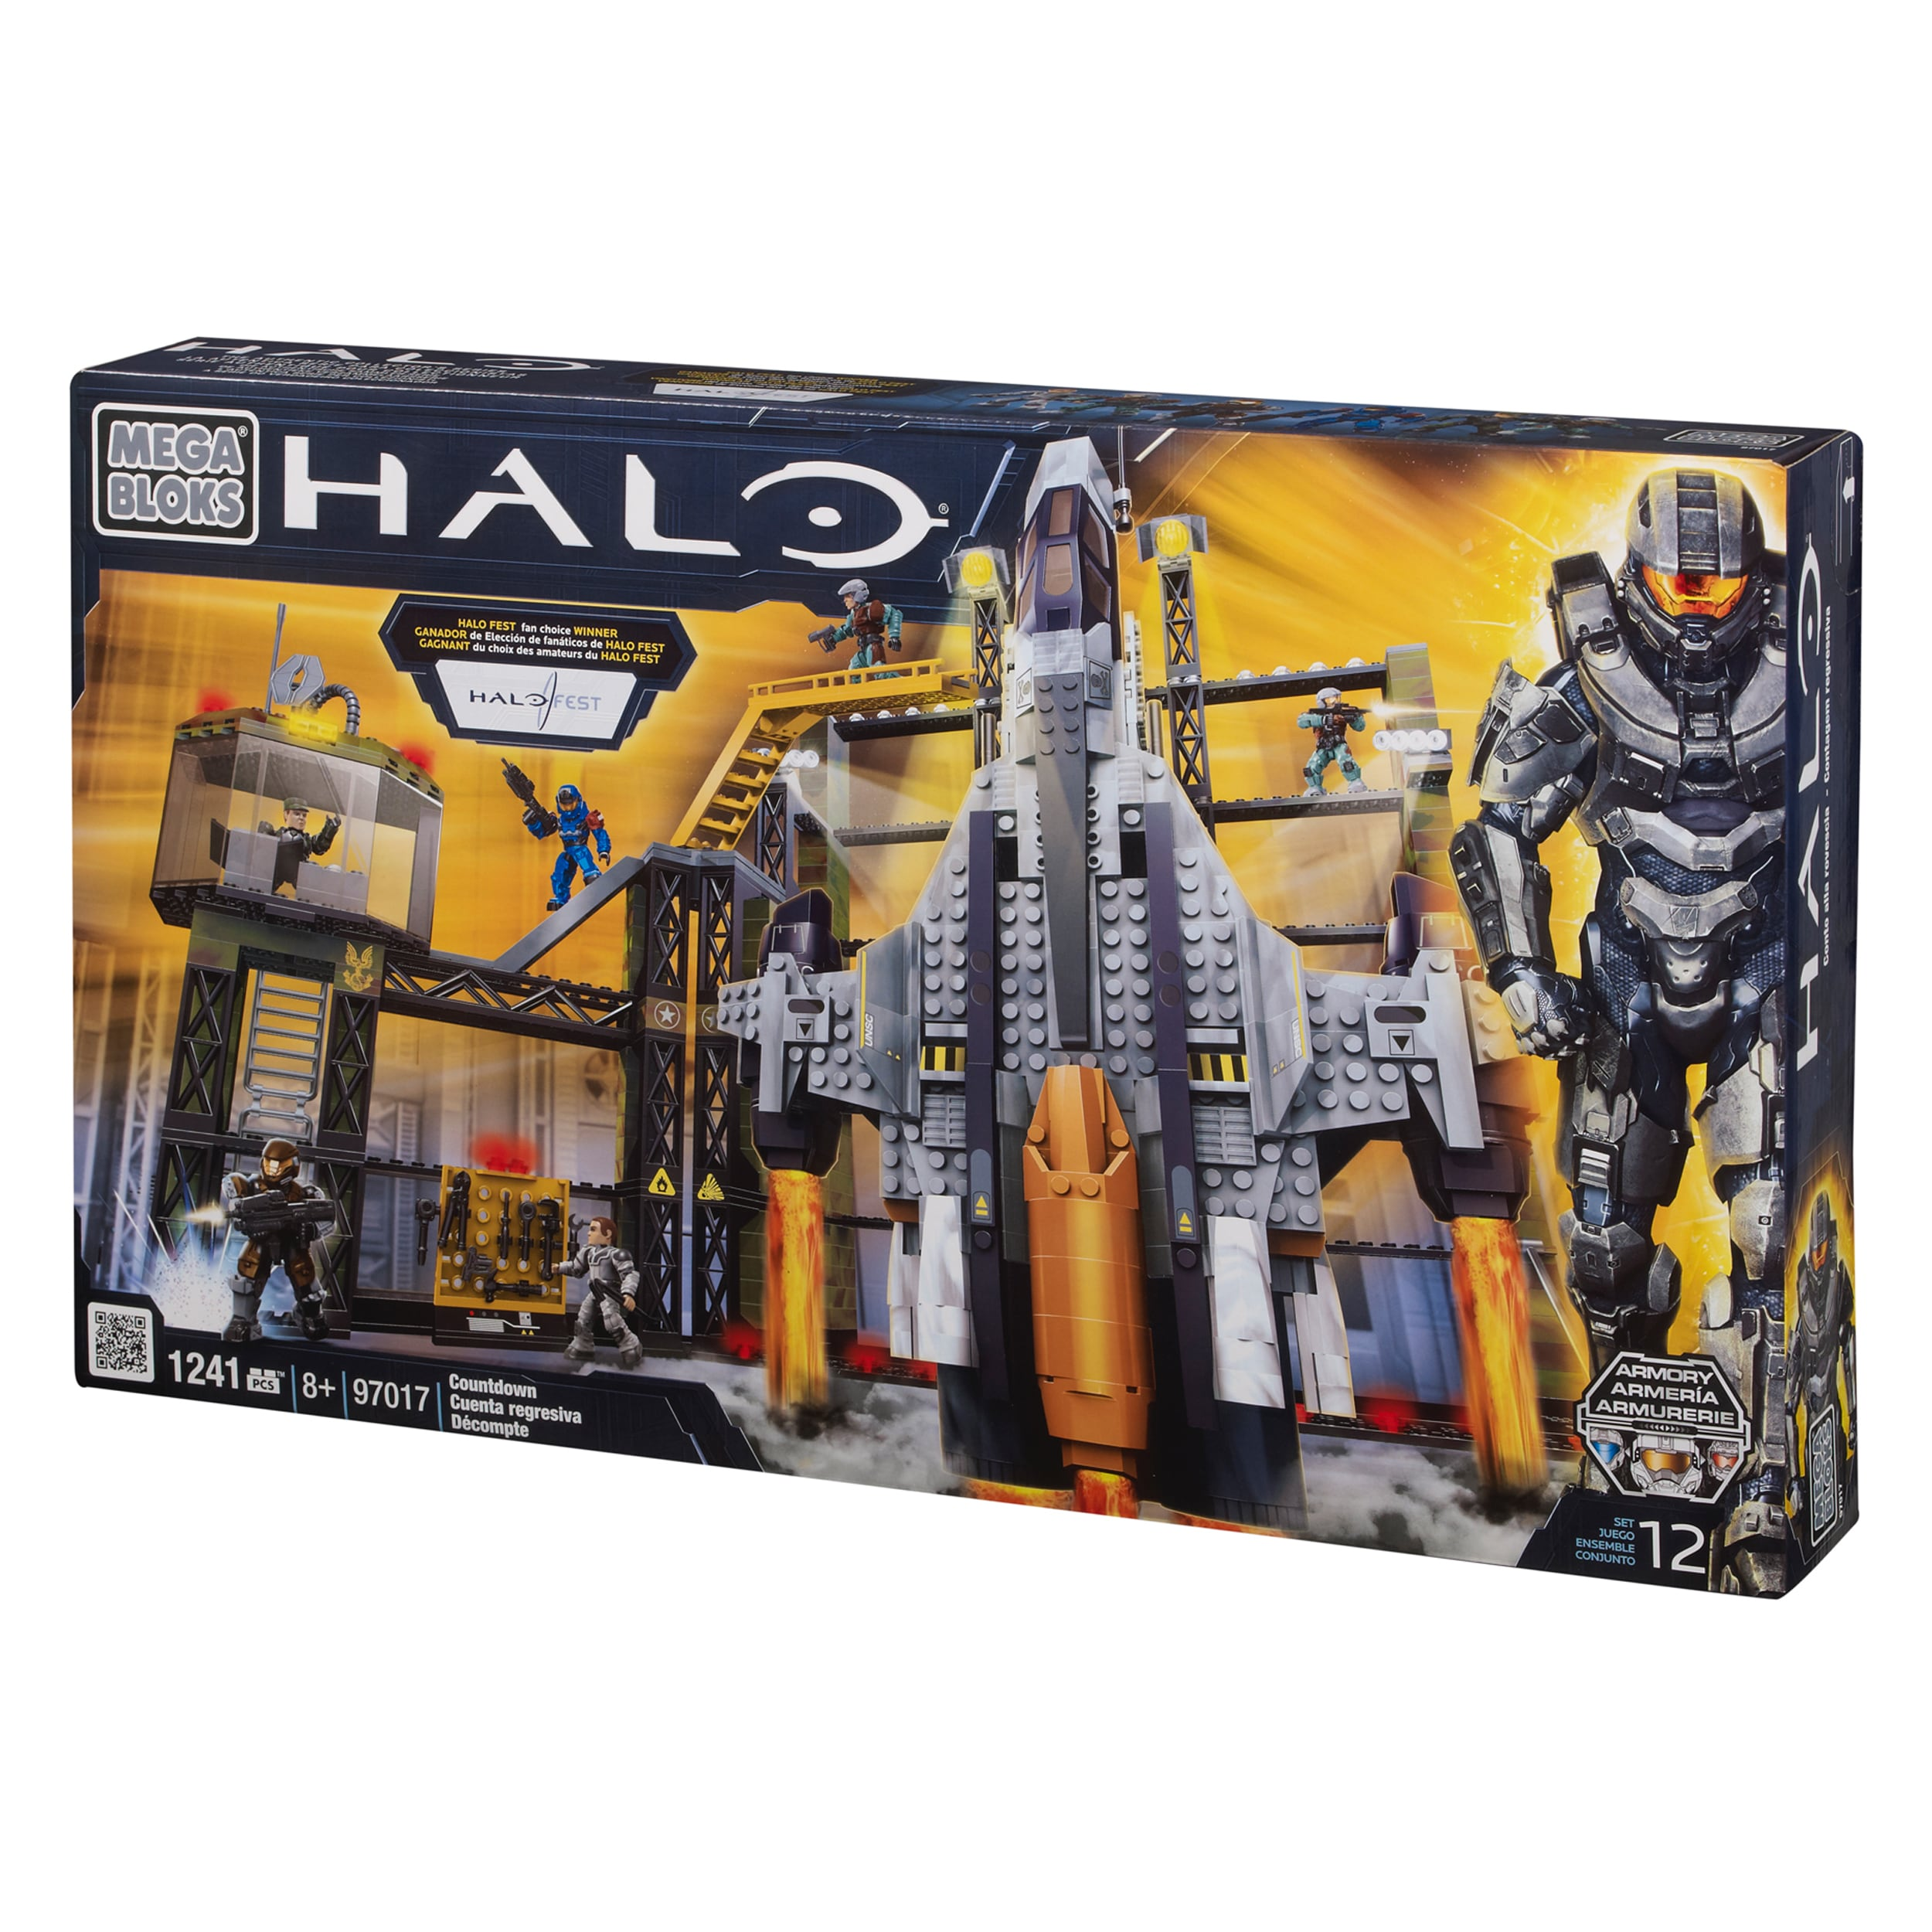 Mega Bloks Halo Countdown Playset